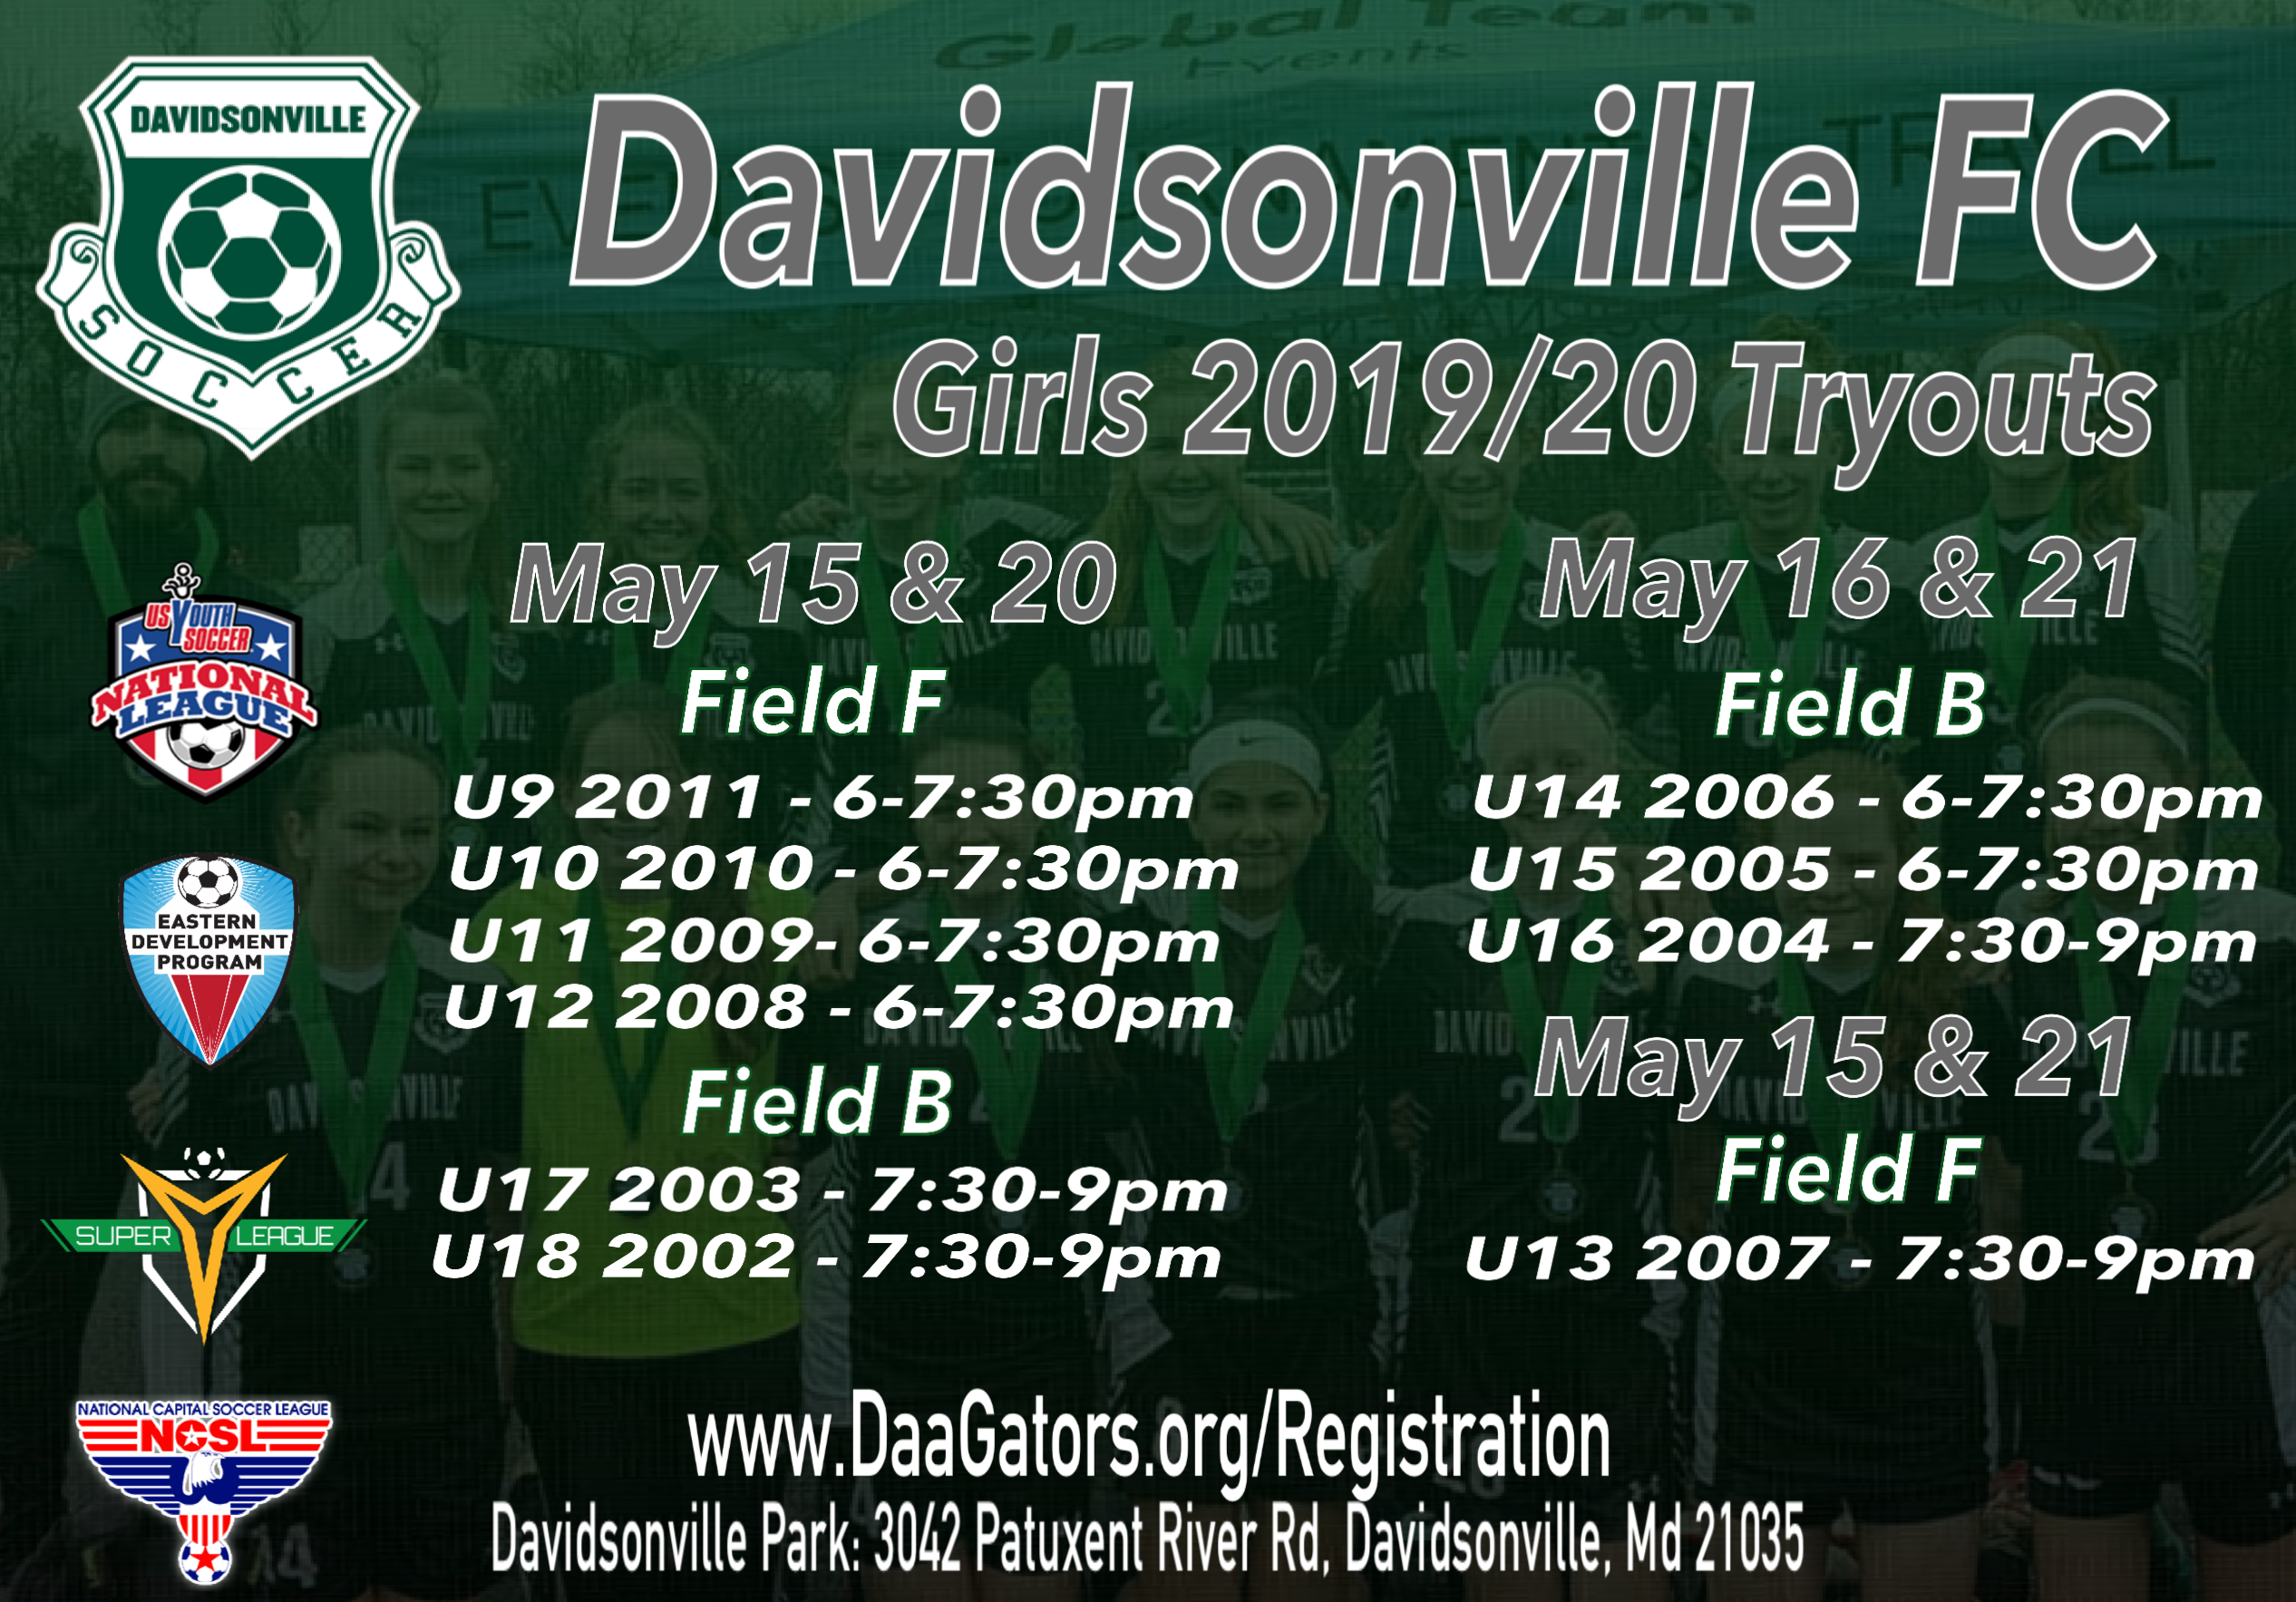 Girl's Tryout Schedule | Davidsonville Athletic Association